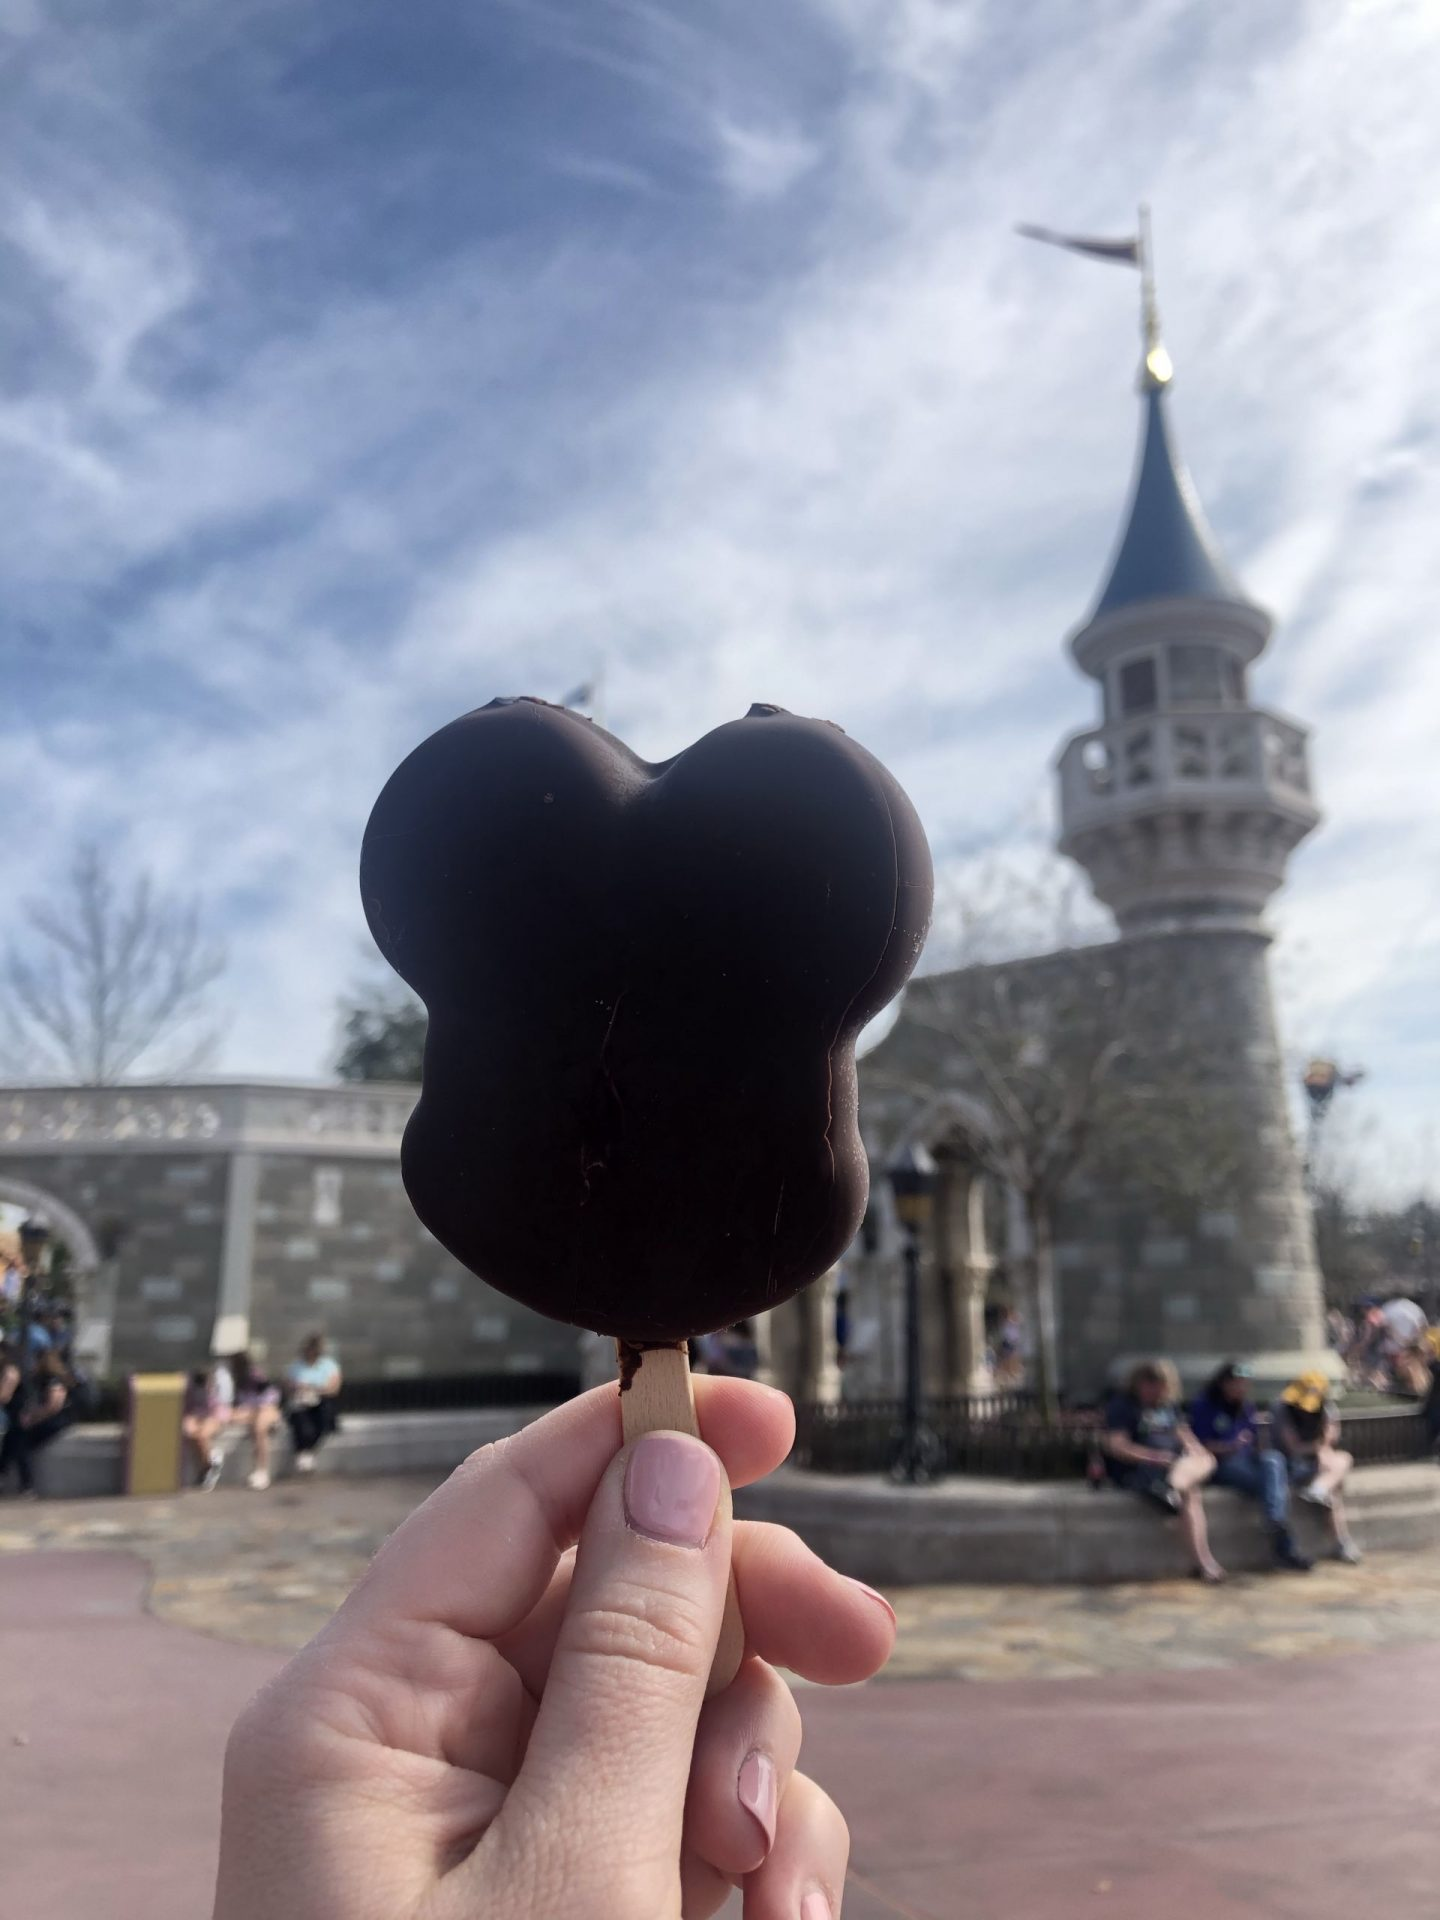 NC blogger Rebecca Lately shares the last full day of her family's Disney World trip, at Magic Kingdom. Check out their favorite snacks & rides!